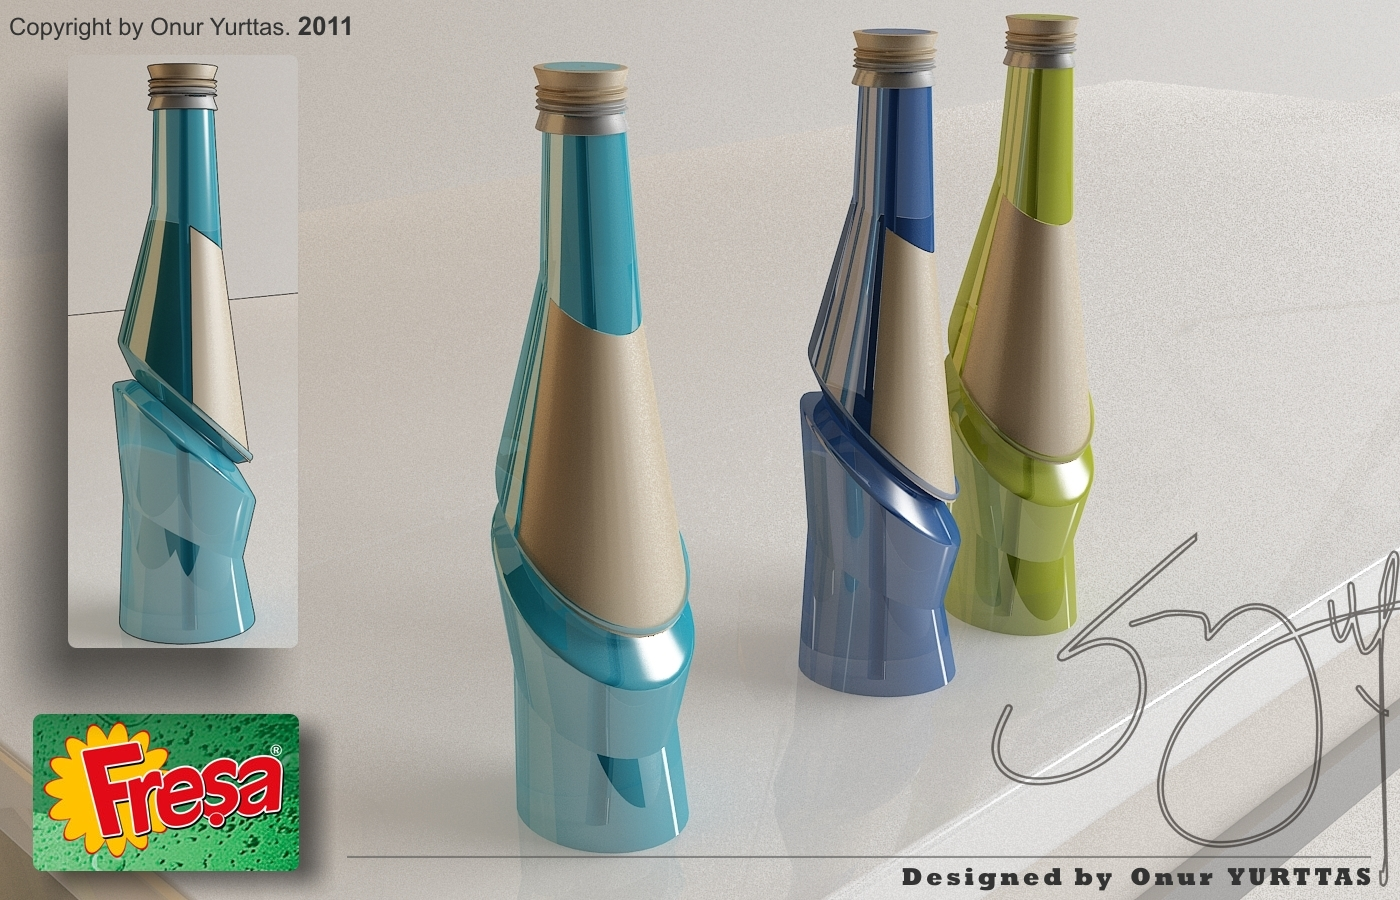 Bottle design 4 by onur yurttas at for 2 by 4 design